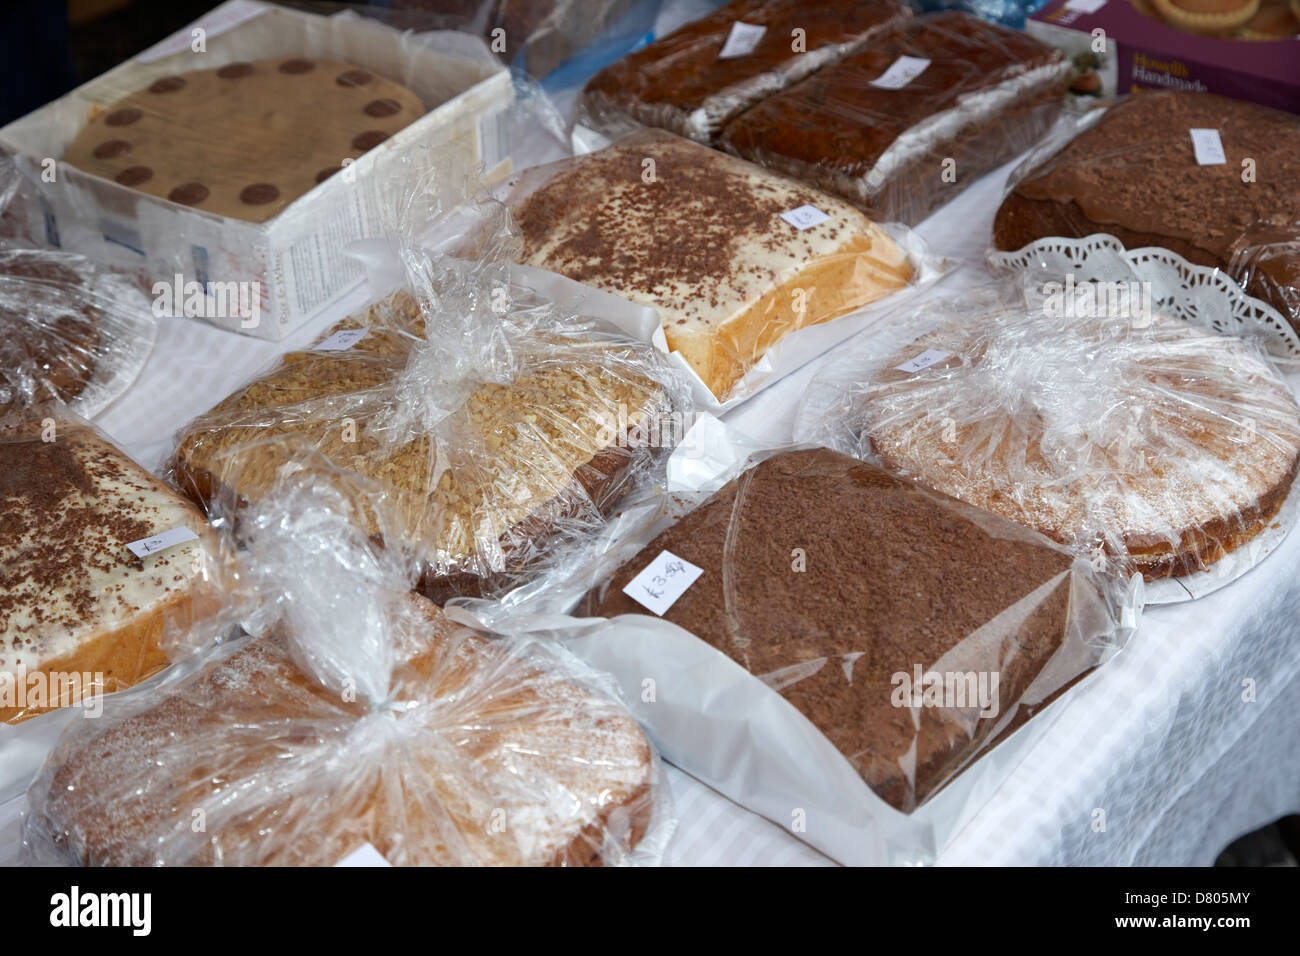 home made cakes on a charity stall at an outdoor event in the uk - Stock Image